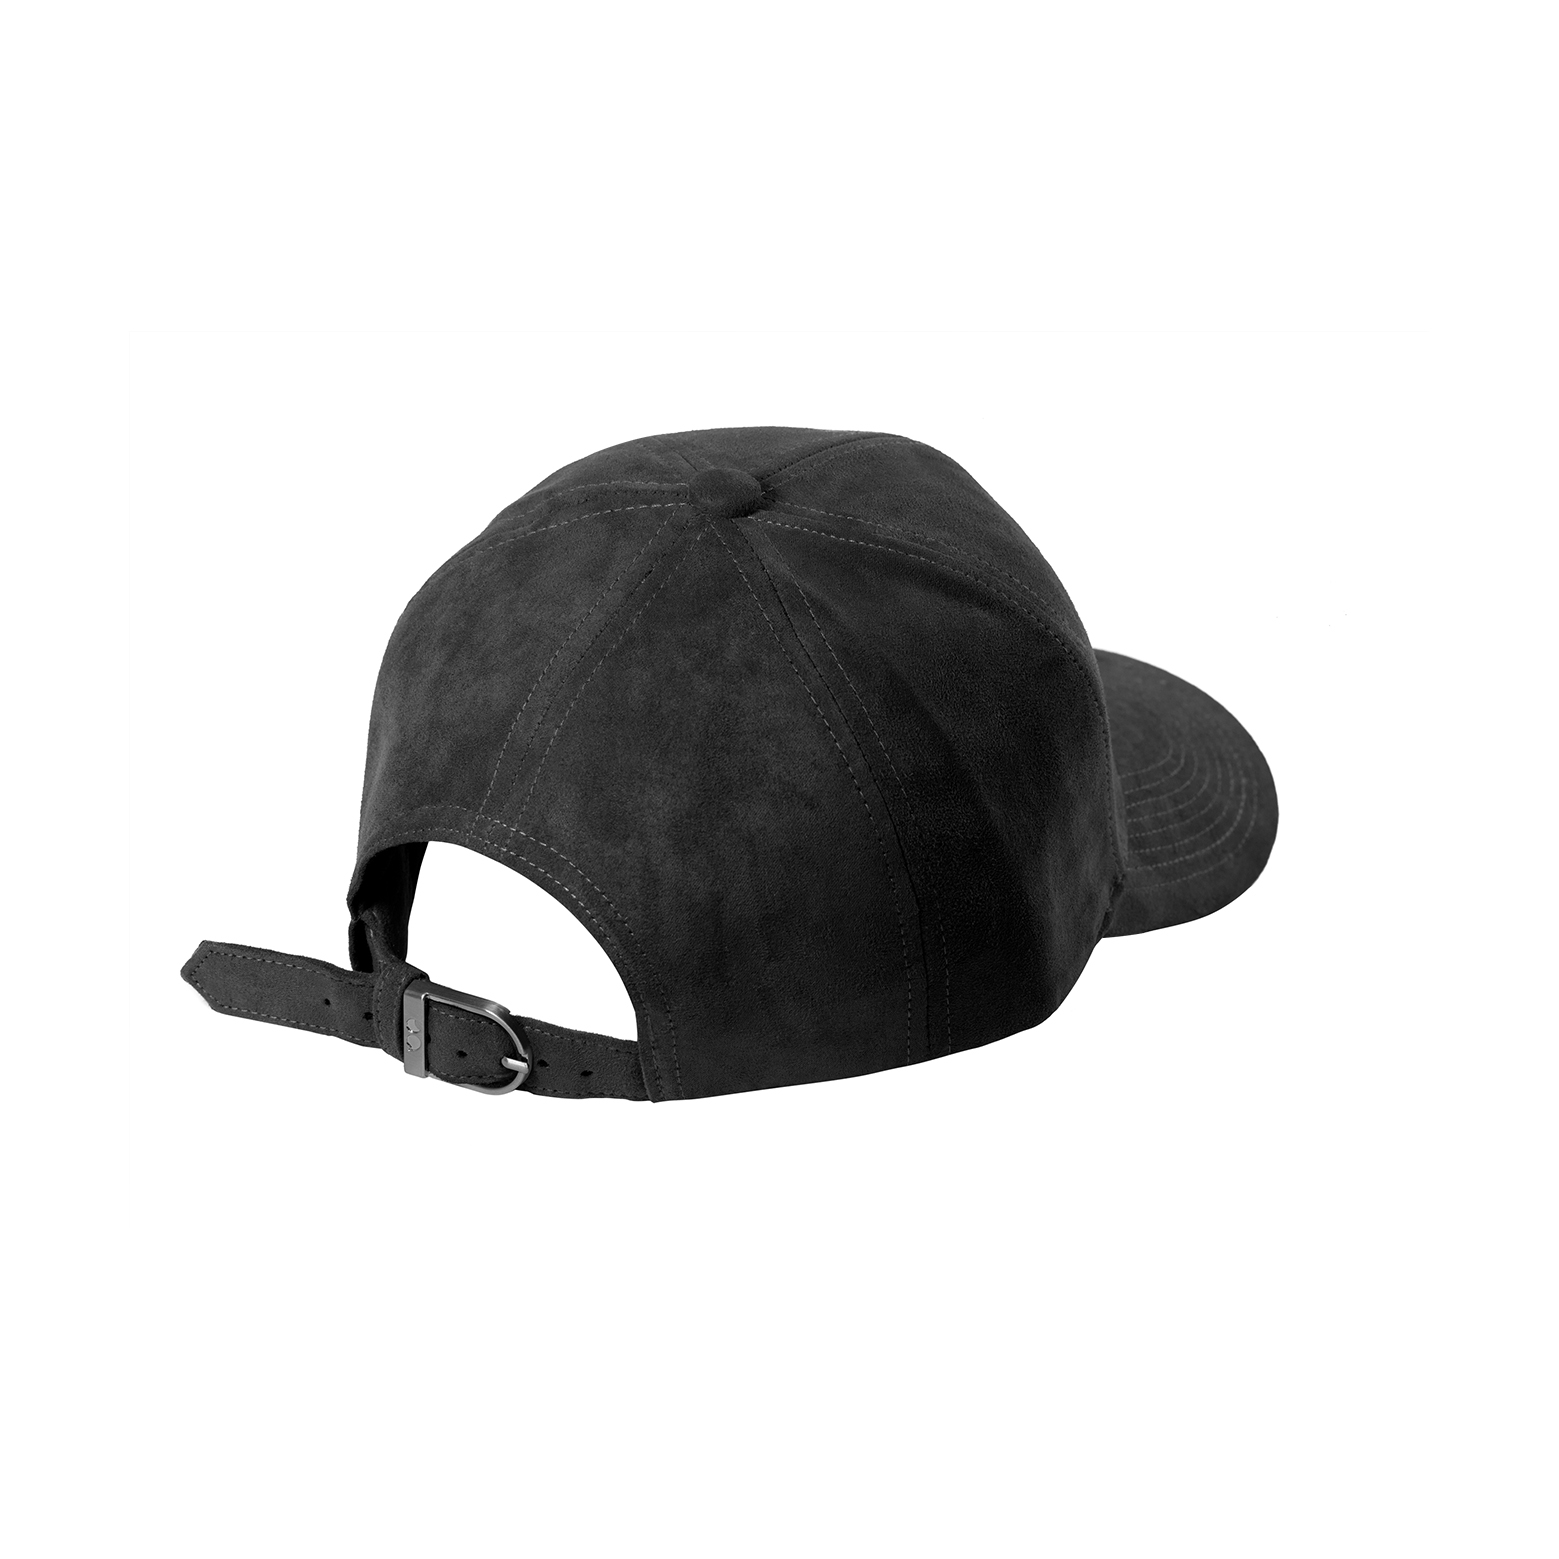 BASEBALL CAP ANTHRACITE SUEDE ANTHRACITE FROZEN GREY SIDE